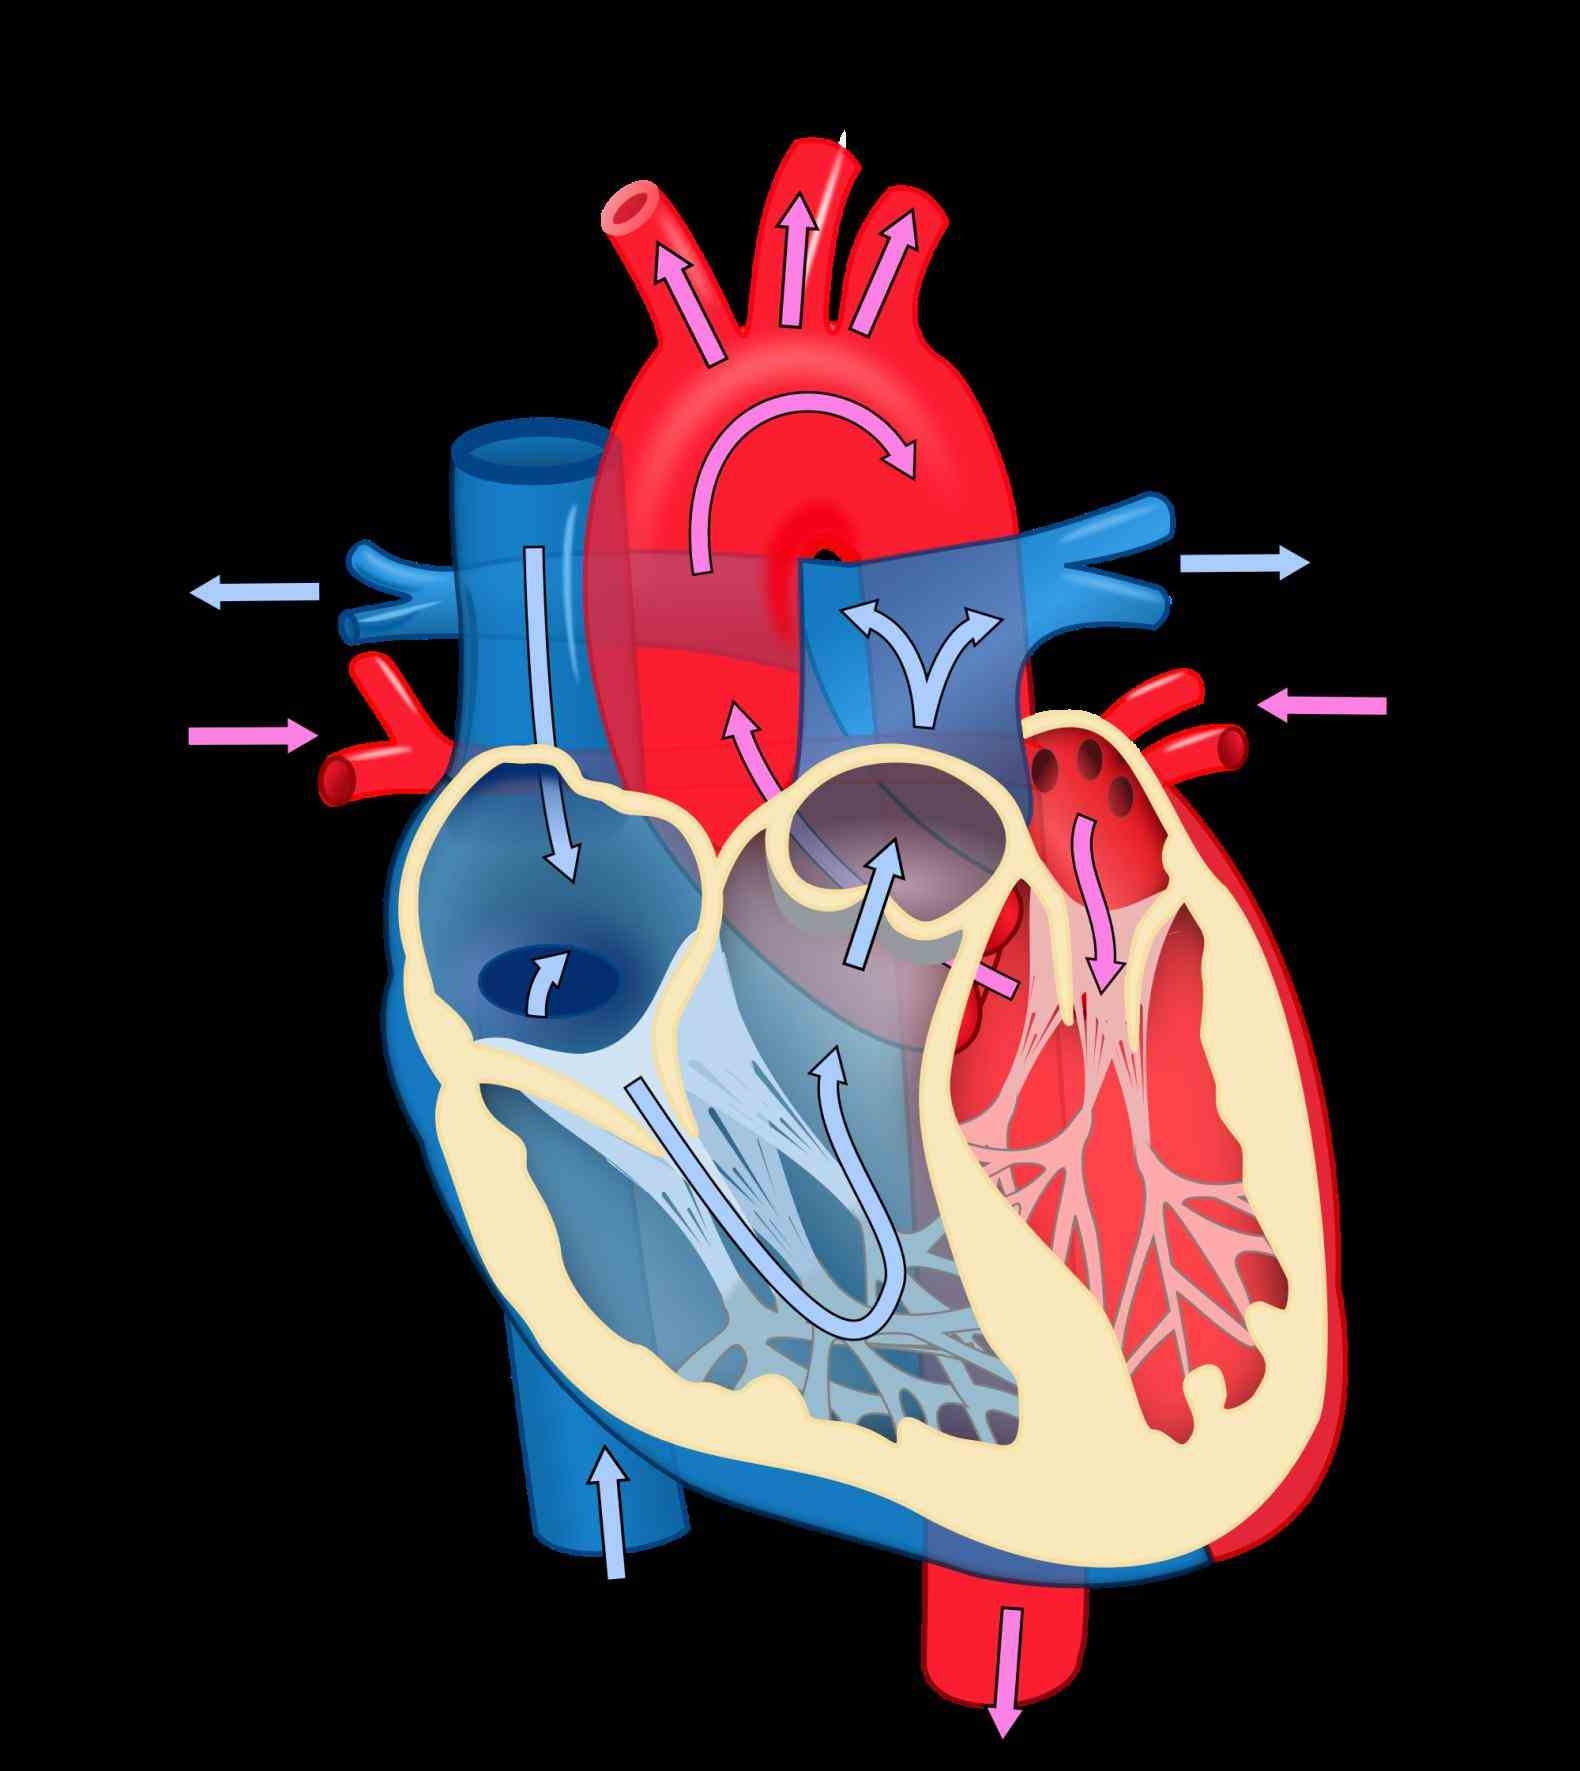 Heart Diagram With Labels And Blood Flow | MedicineBTG.com